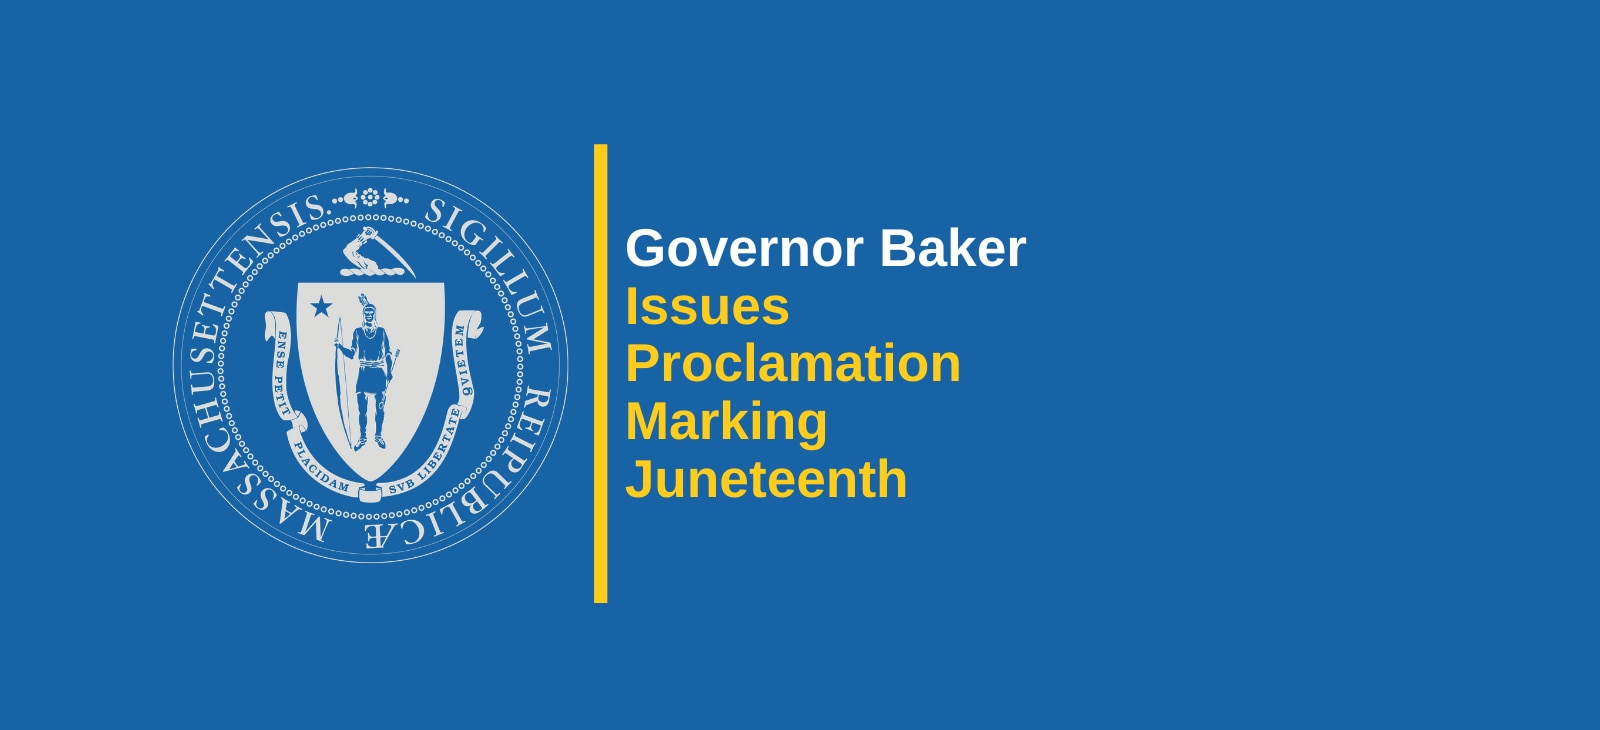 Governor Baker Issues Proclamation Marking Juneteenth